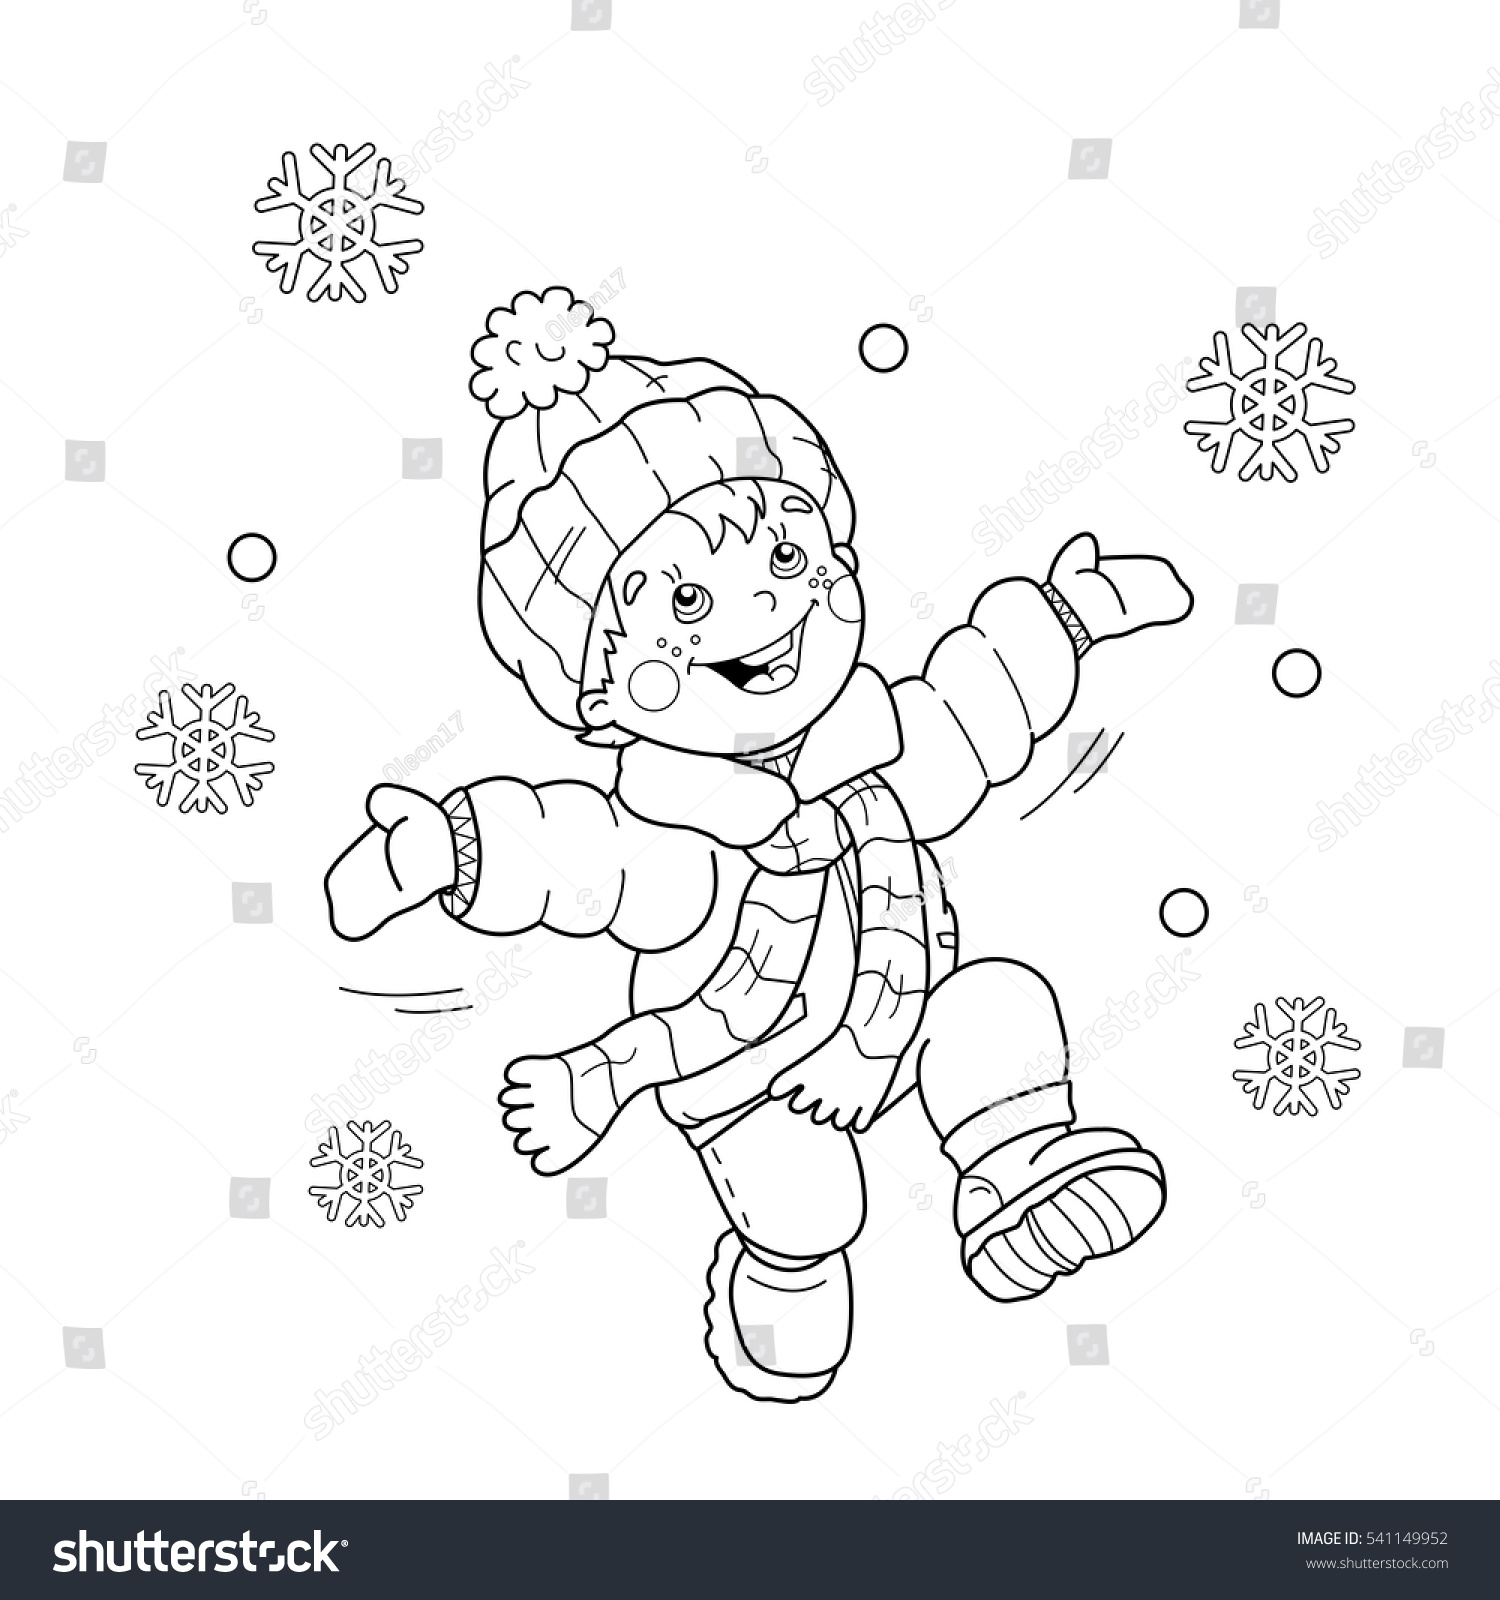 coloring page outline cartoon boy jumping stock vector 541149952